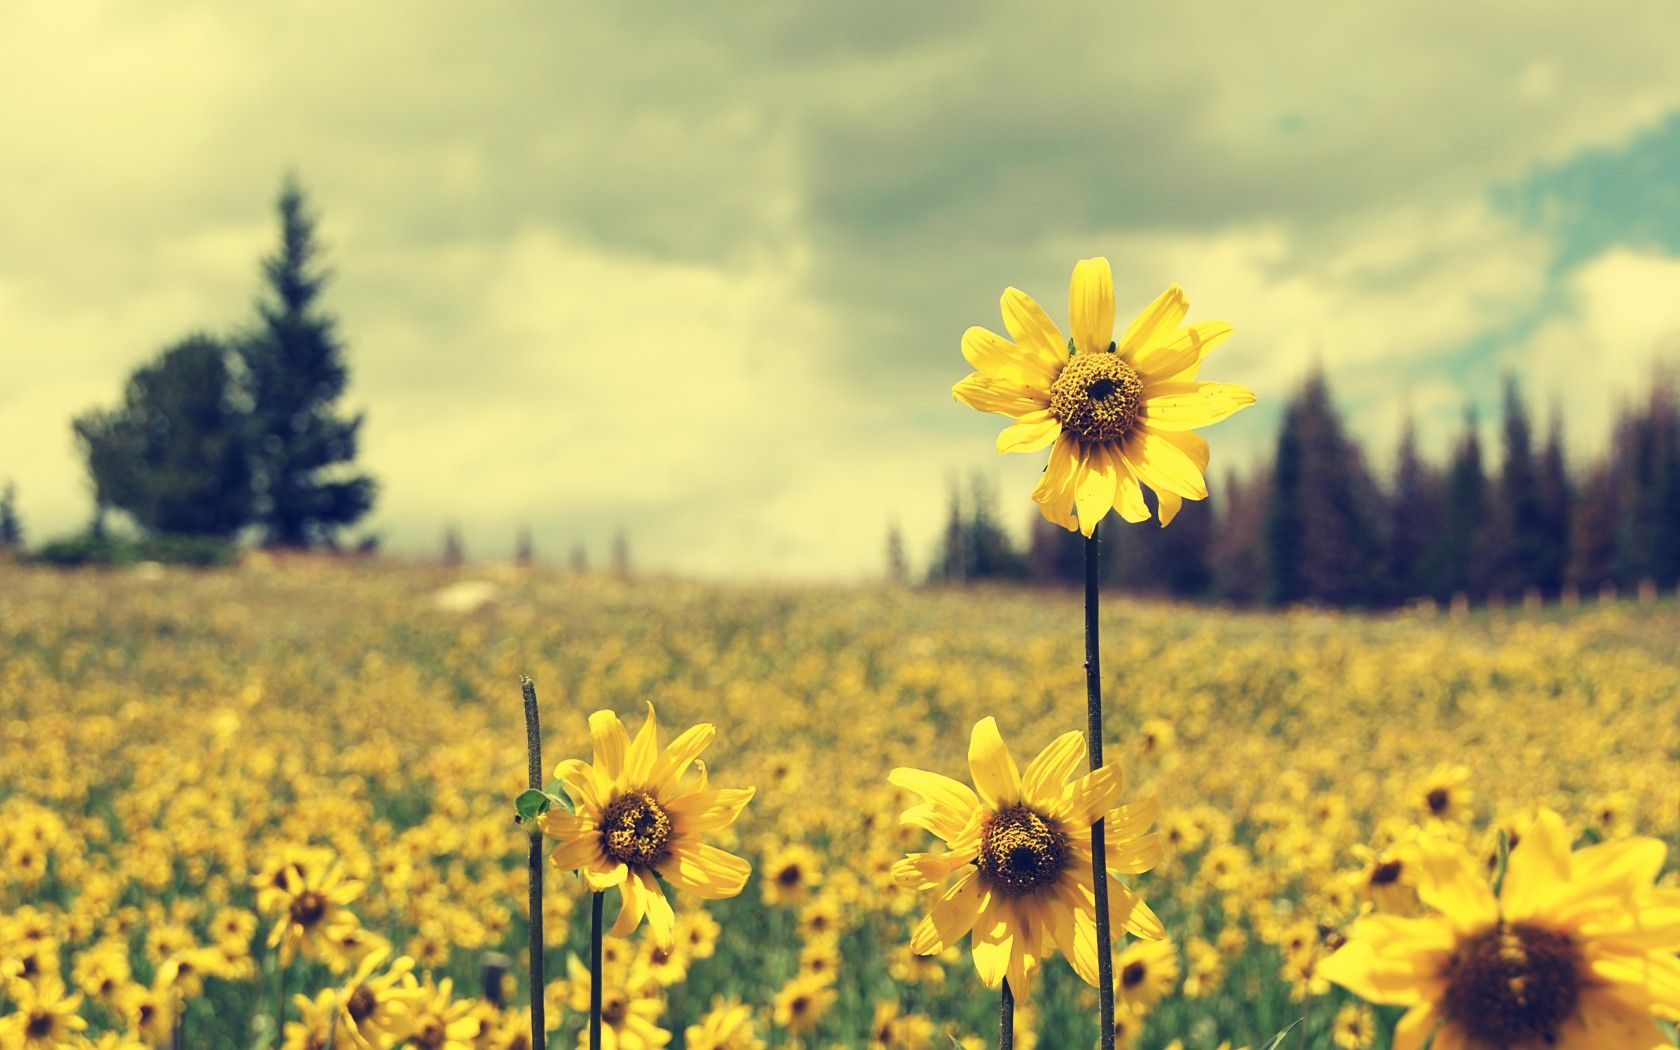 Vintage Sunflower Background ~ Sdeerwallpaper | Lockscreen